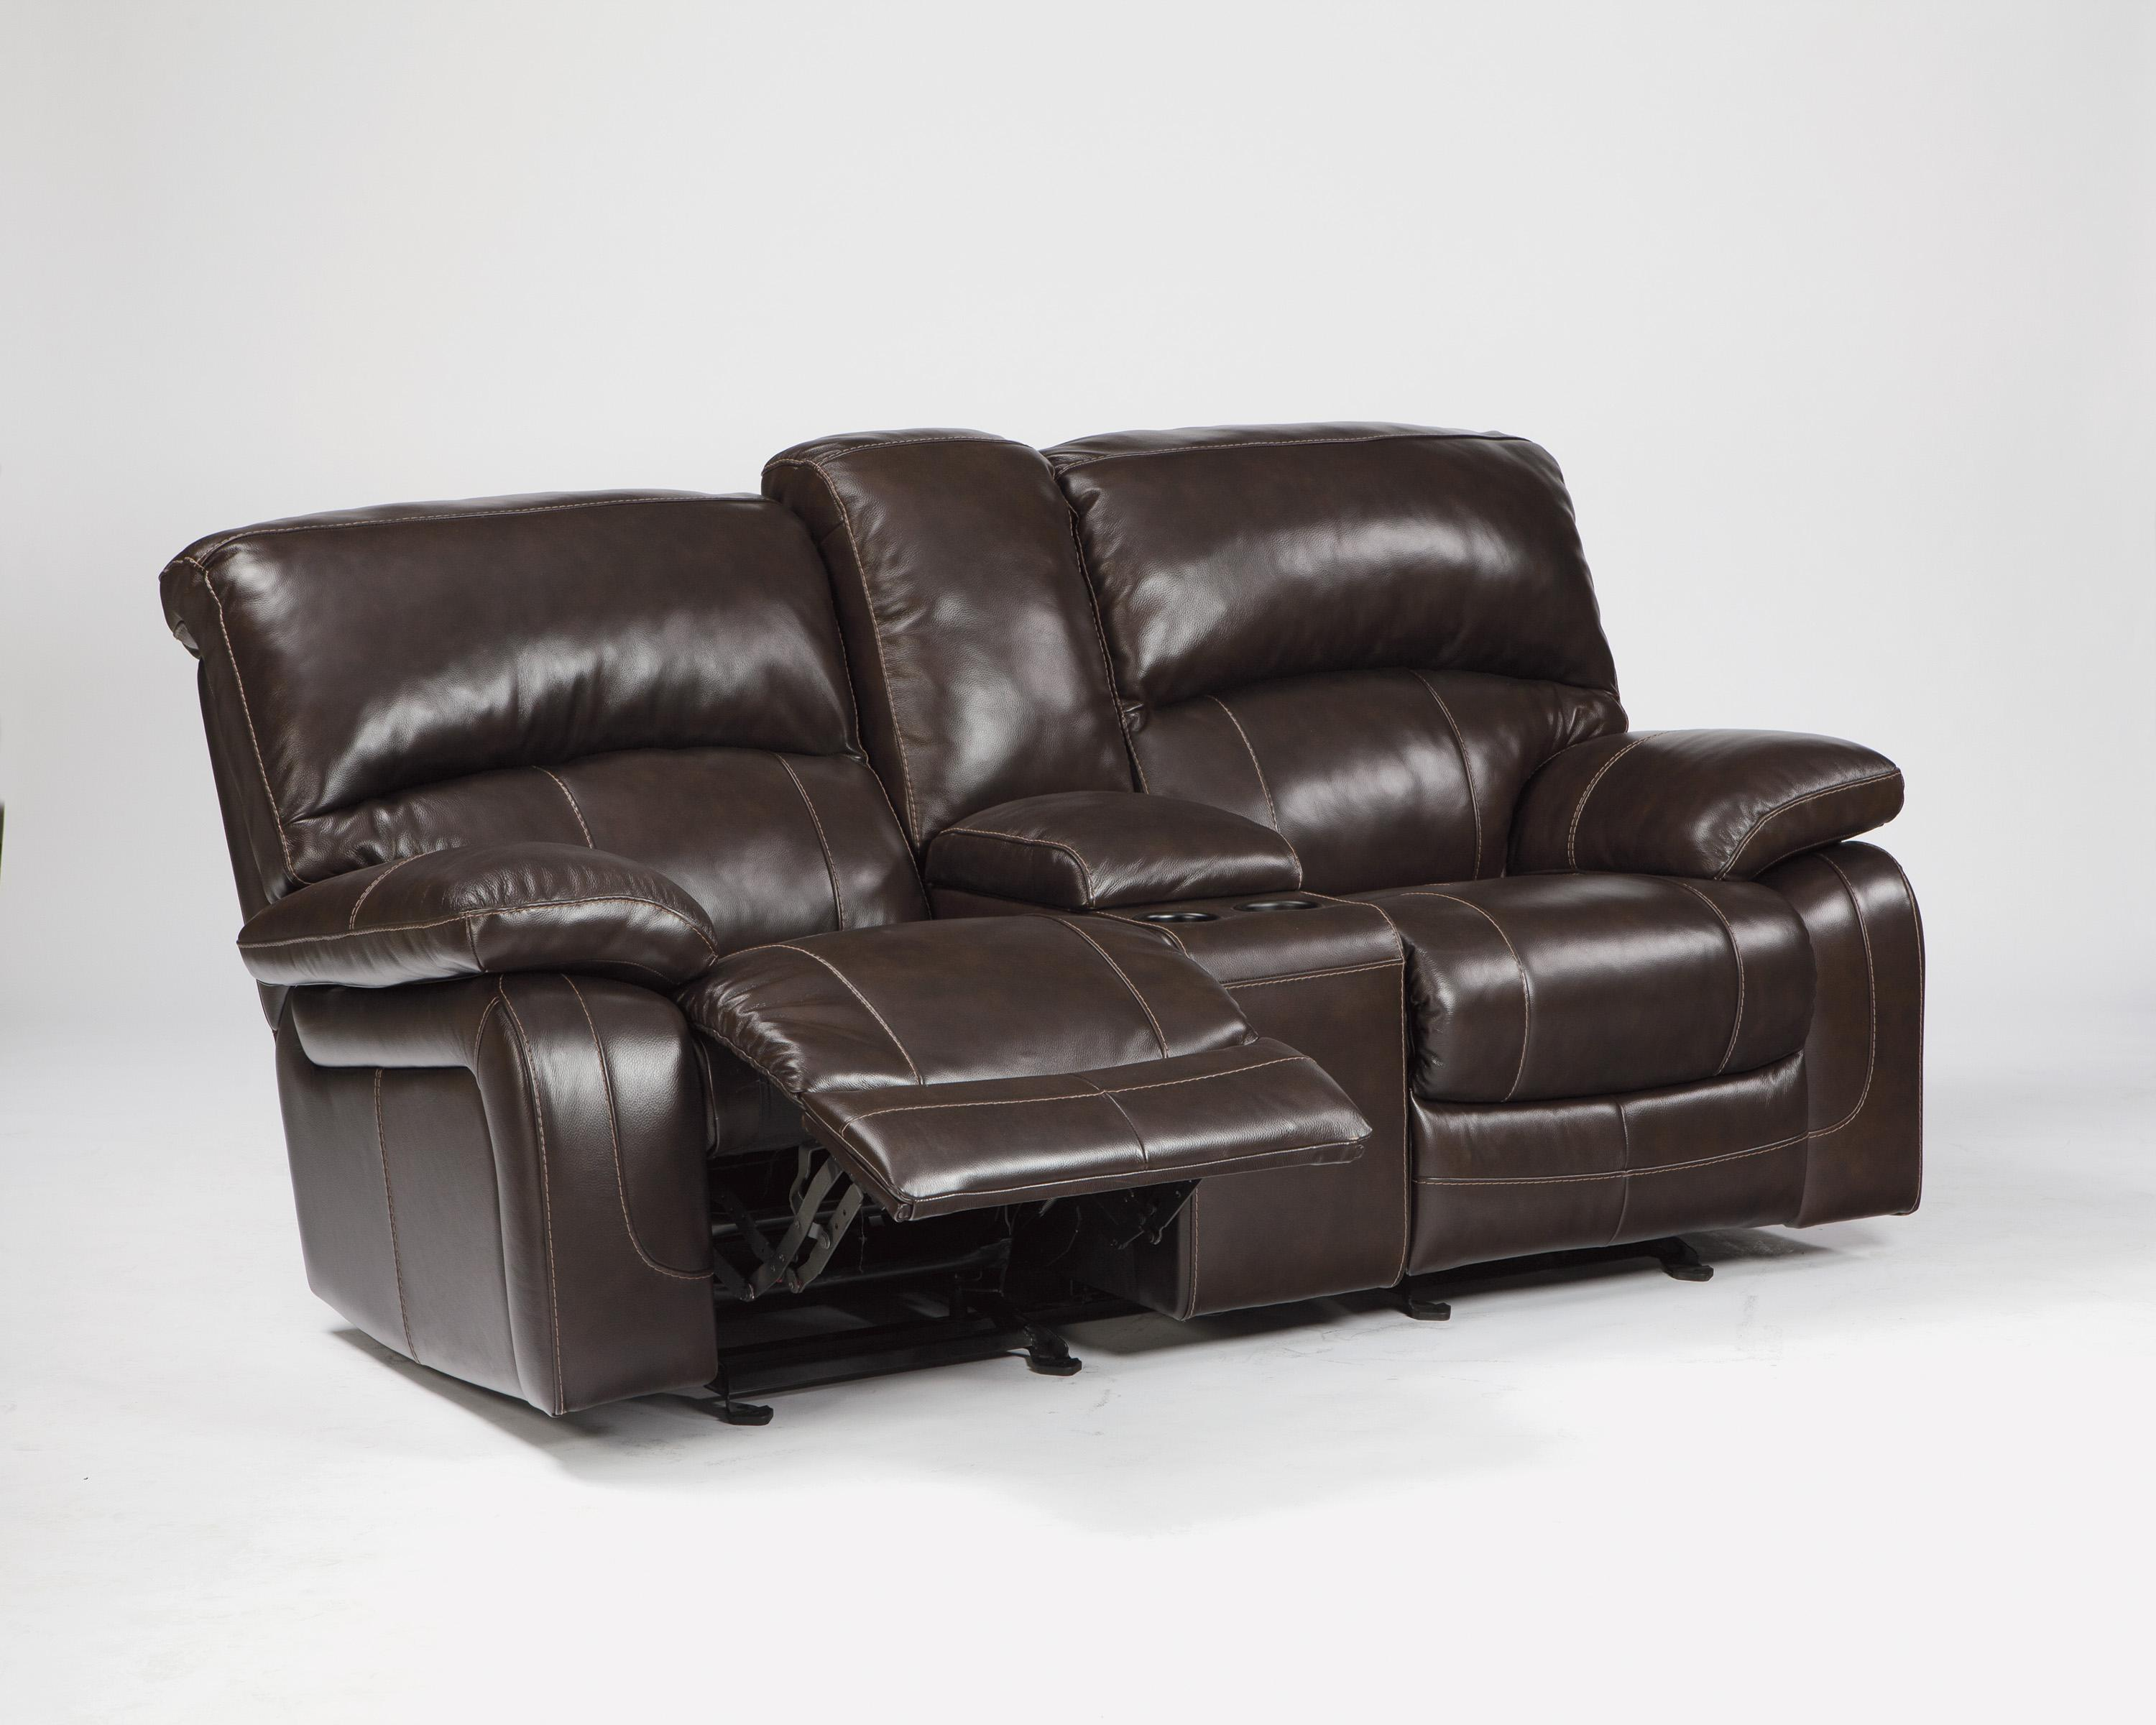 Signature Design By Ashley Denali U9820091 Leather Match Glider Recliner Power Loveseat W